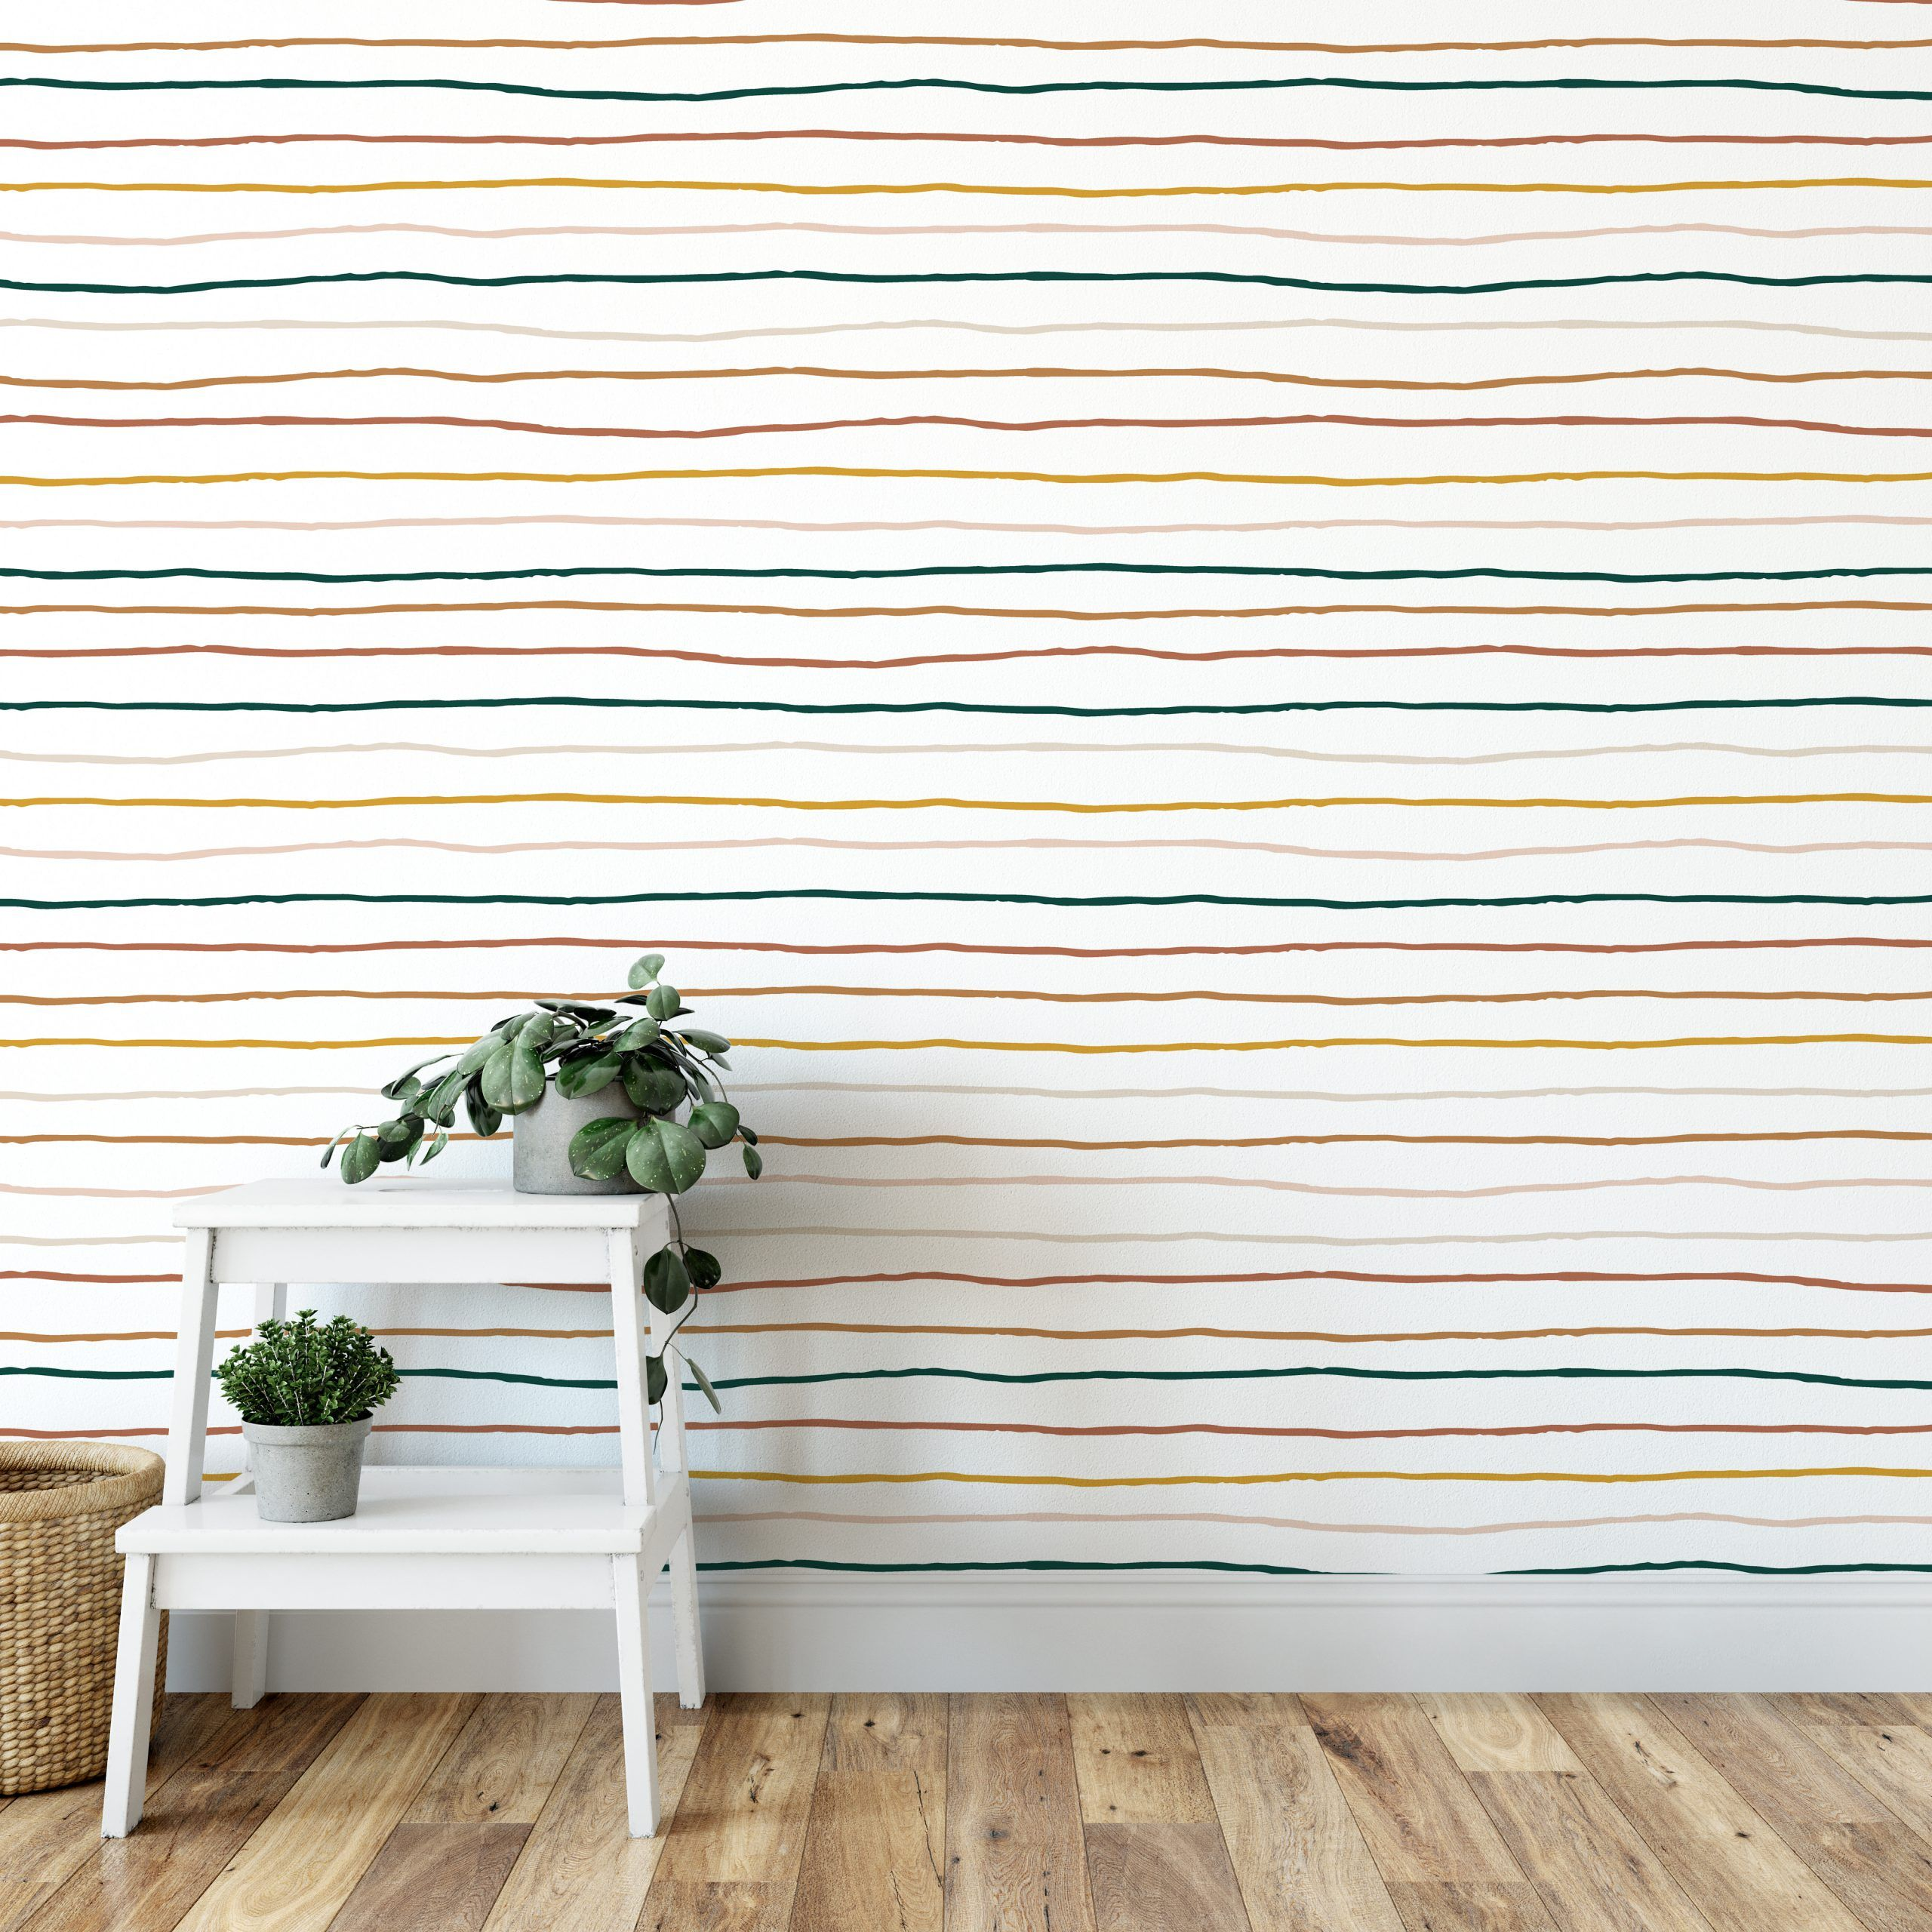 Colorful Stripes How To Install Wallpaper Striped Walls Peel And Stick Wallpaper